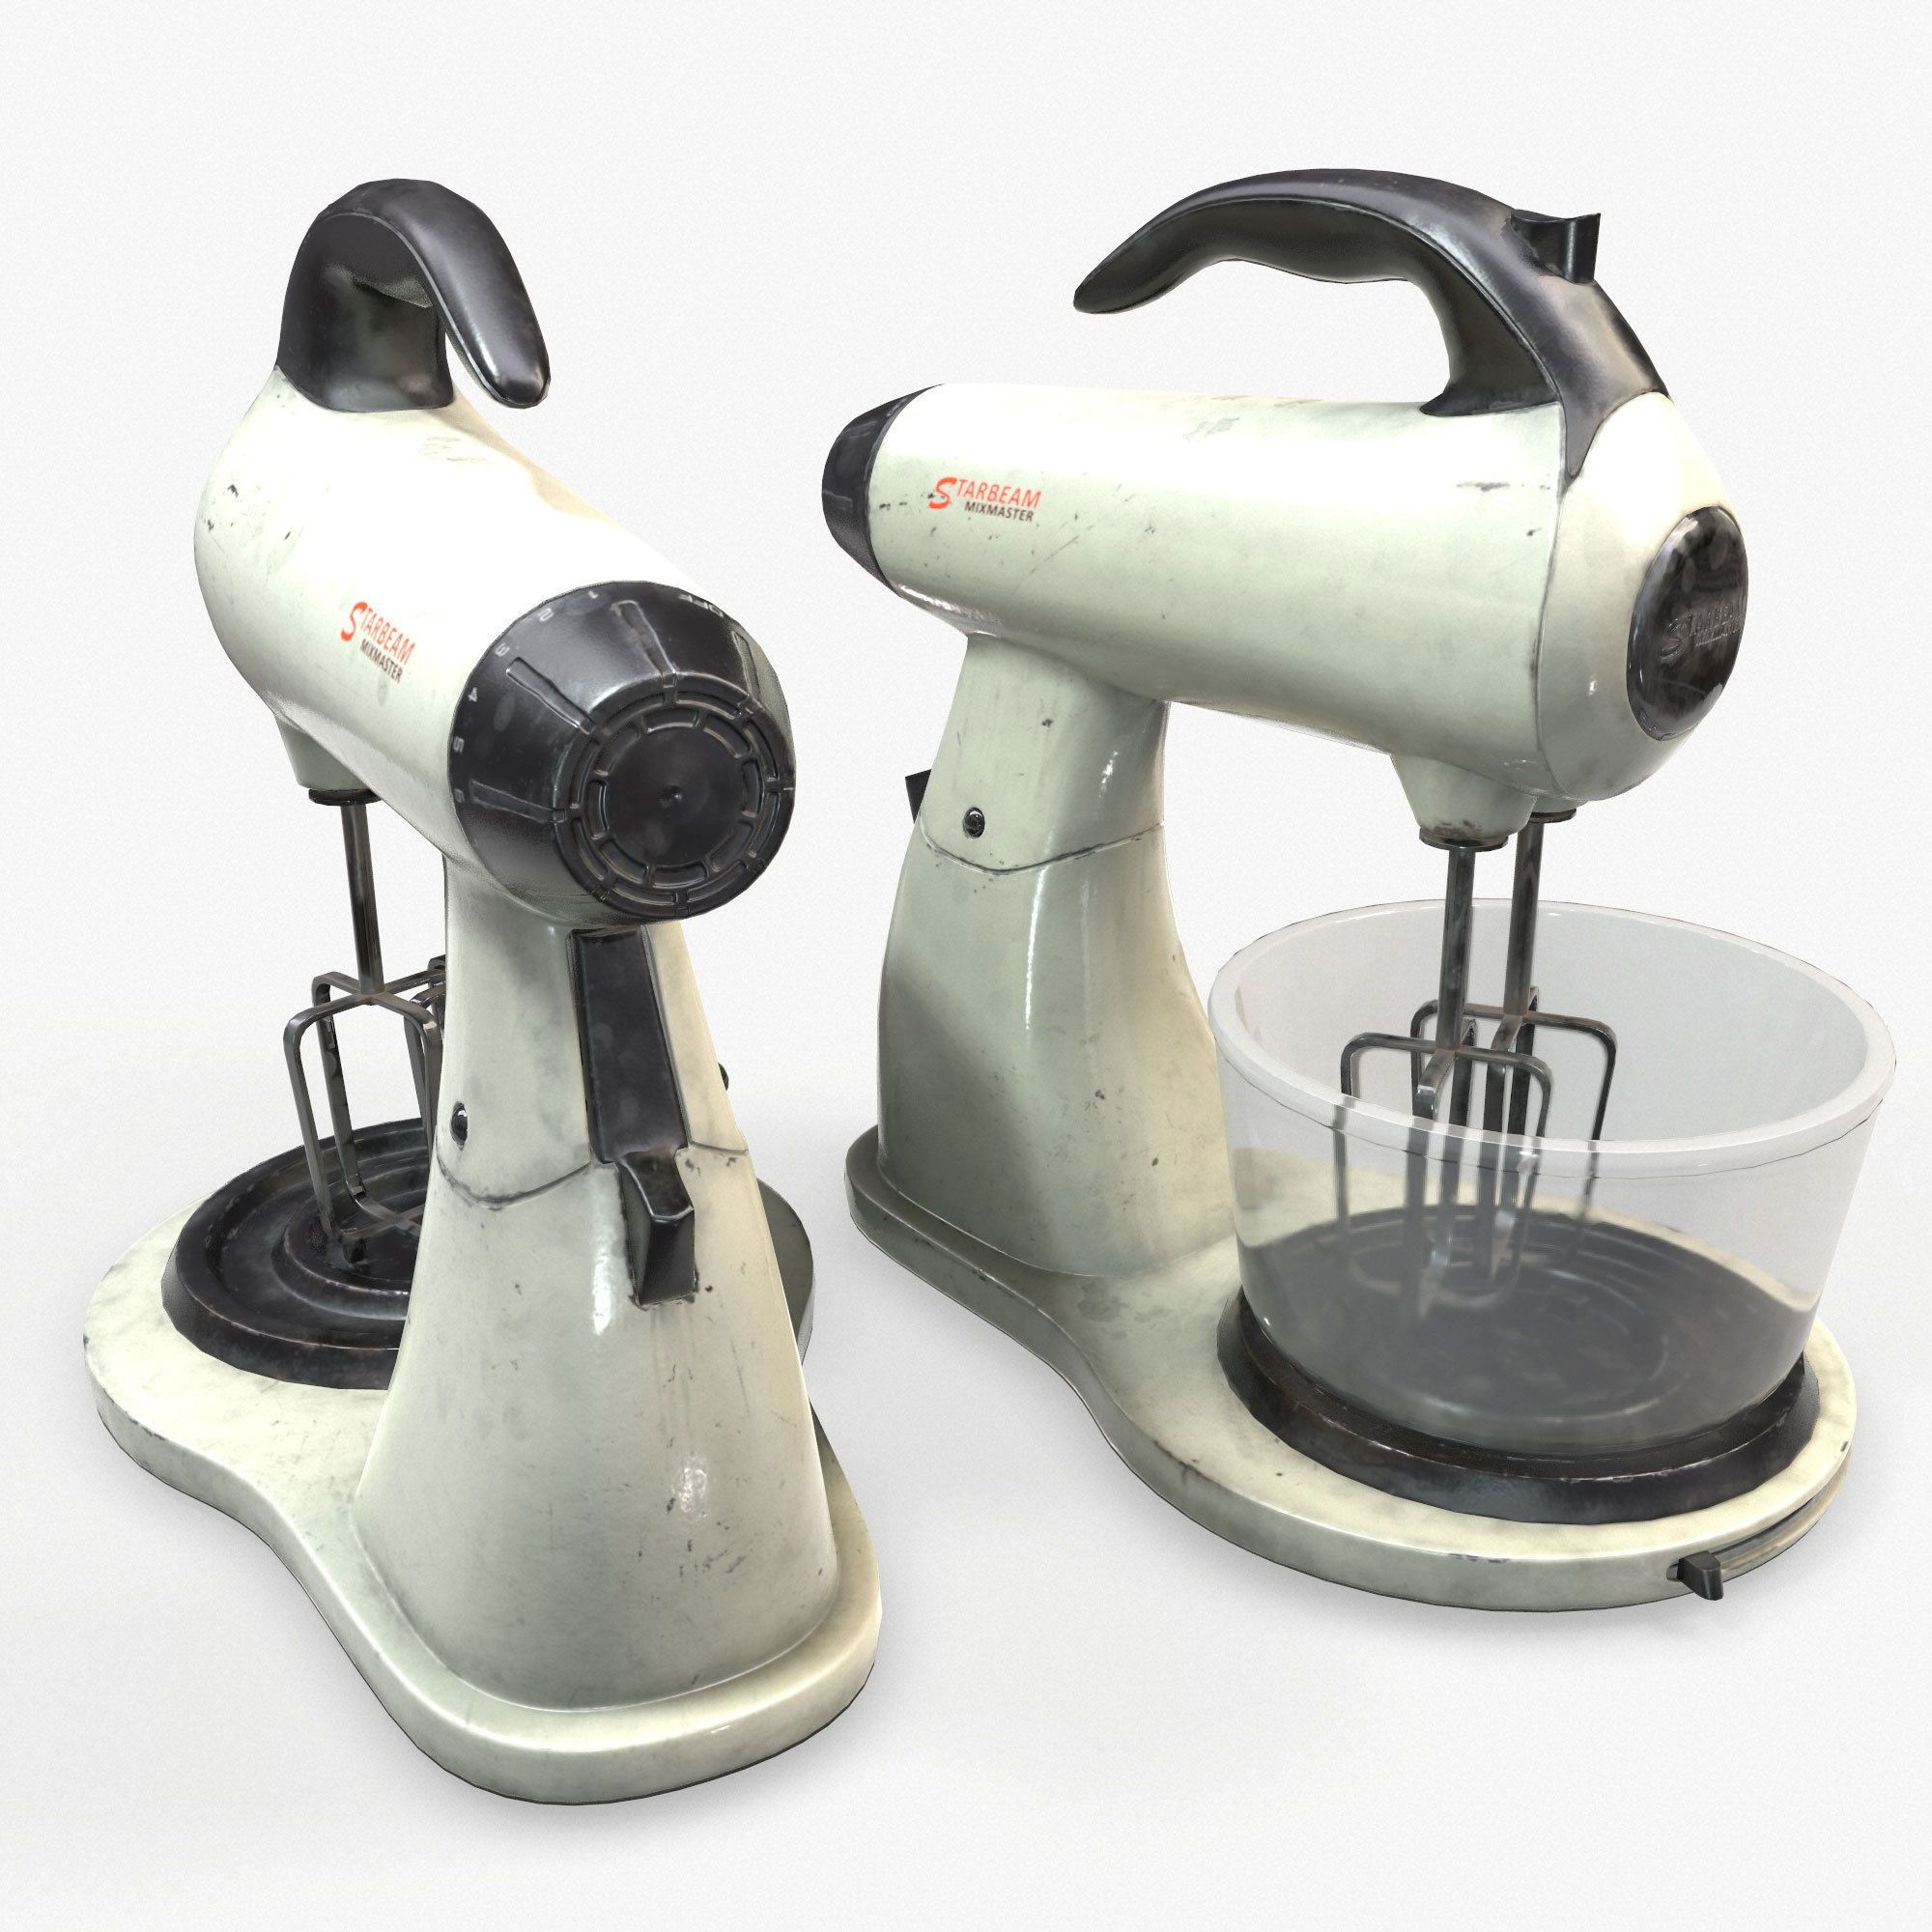 Blender Mixer Kitchen Appliance Low Poly Game Ready 3D